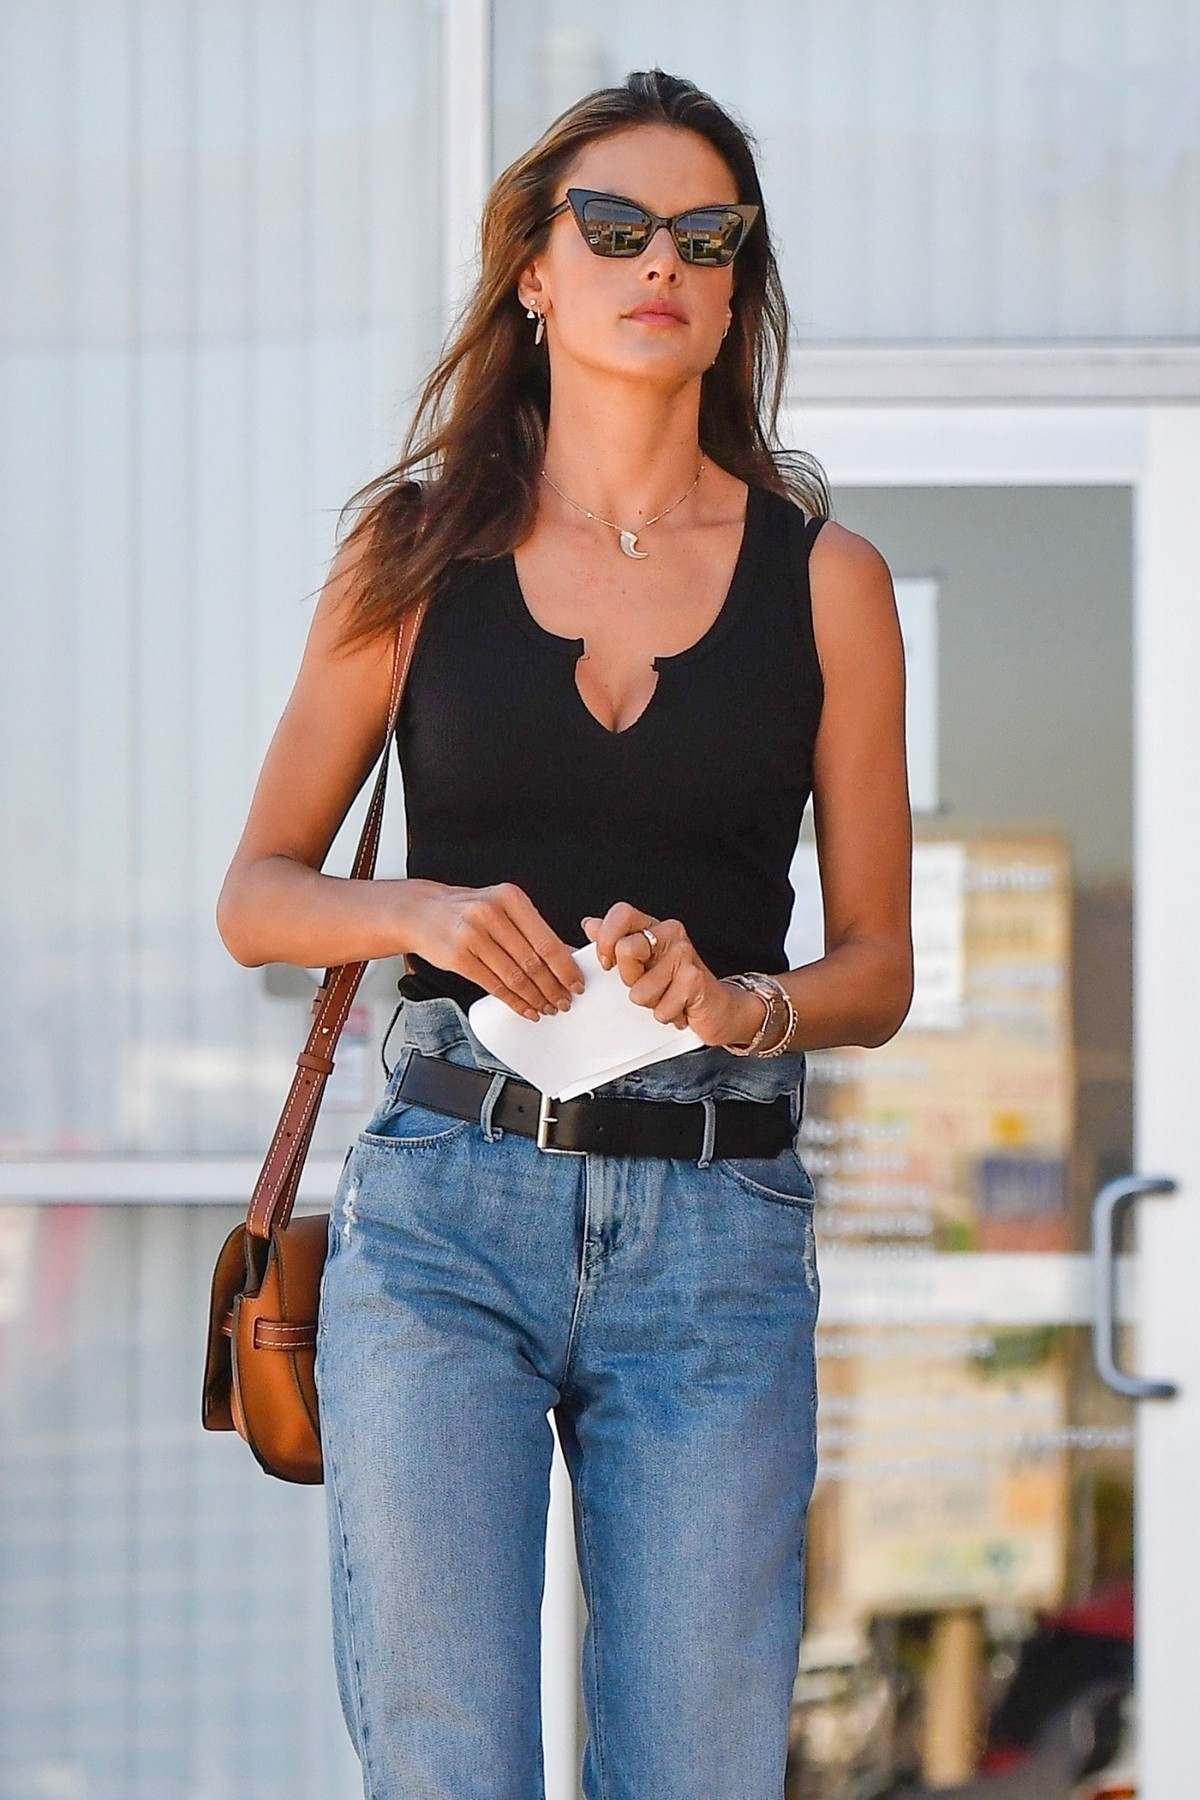 Alessandra Ambrosio in Black Top and Blue Jeans out in Los Angeles 2019/11/18 21